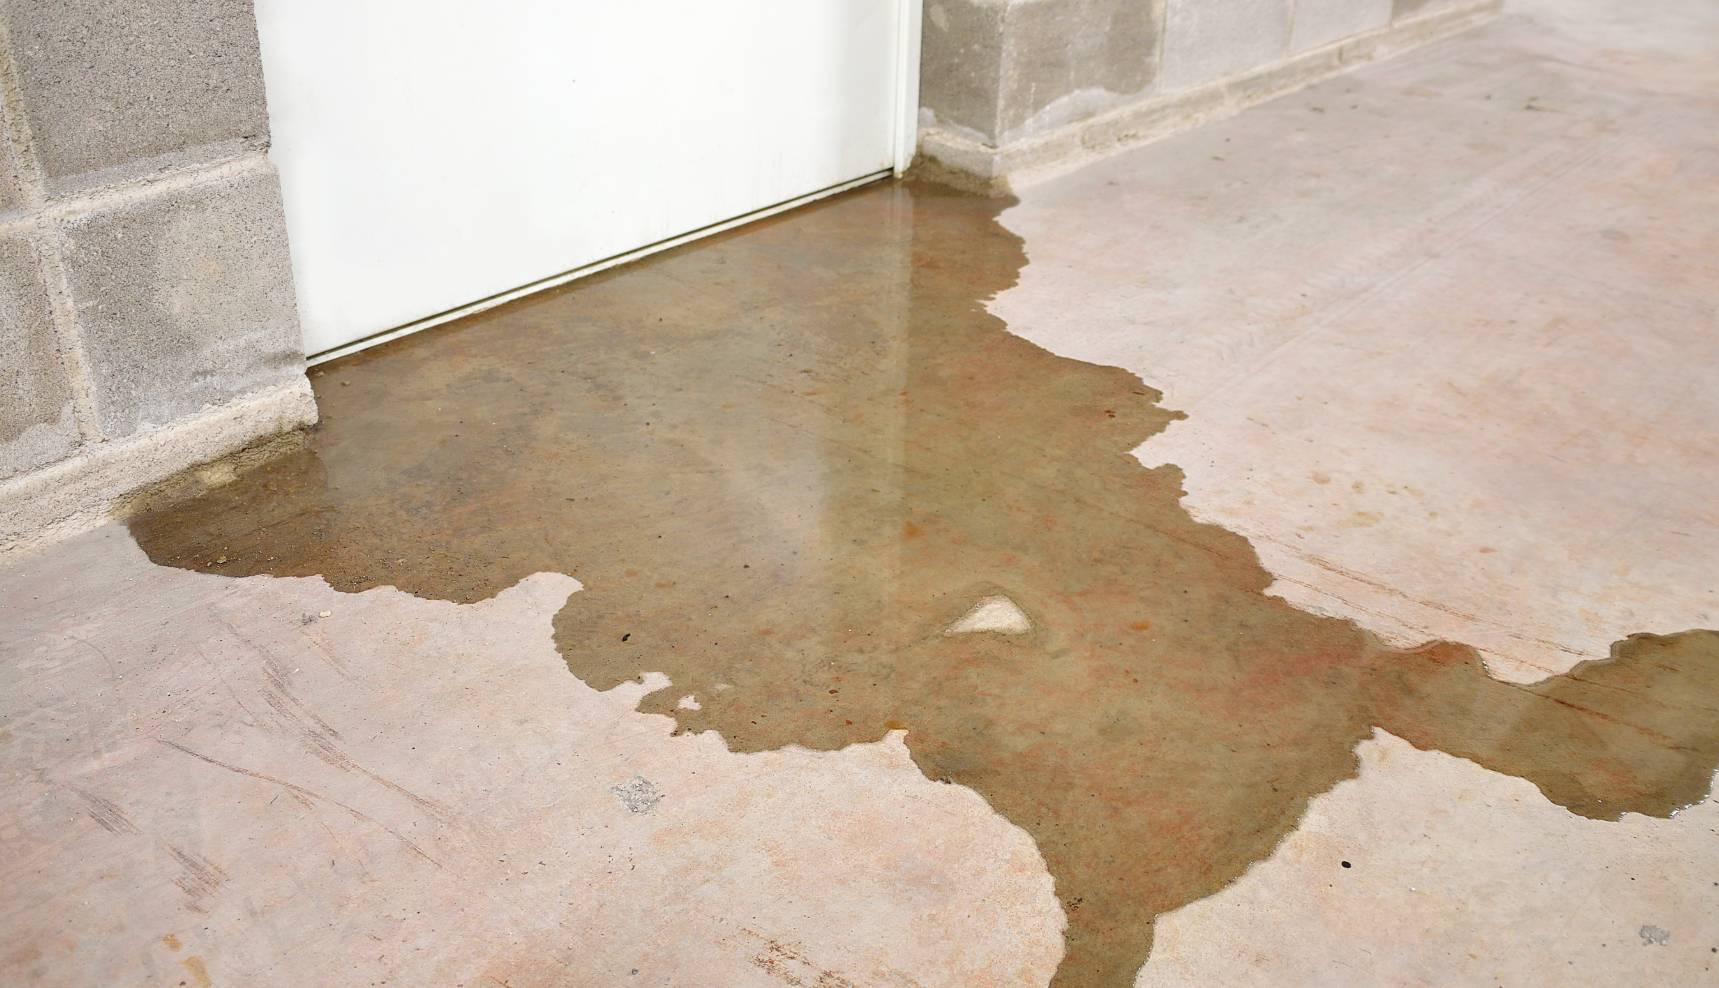 Image of water damage in basement